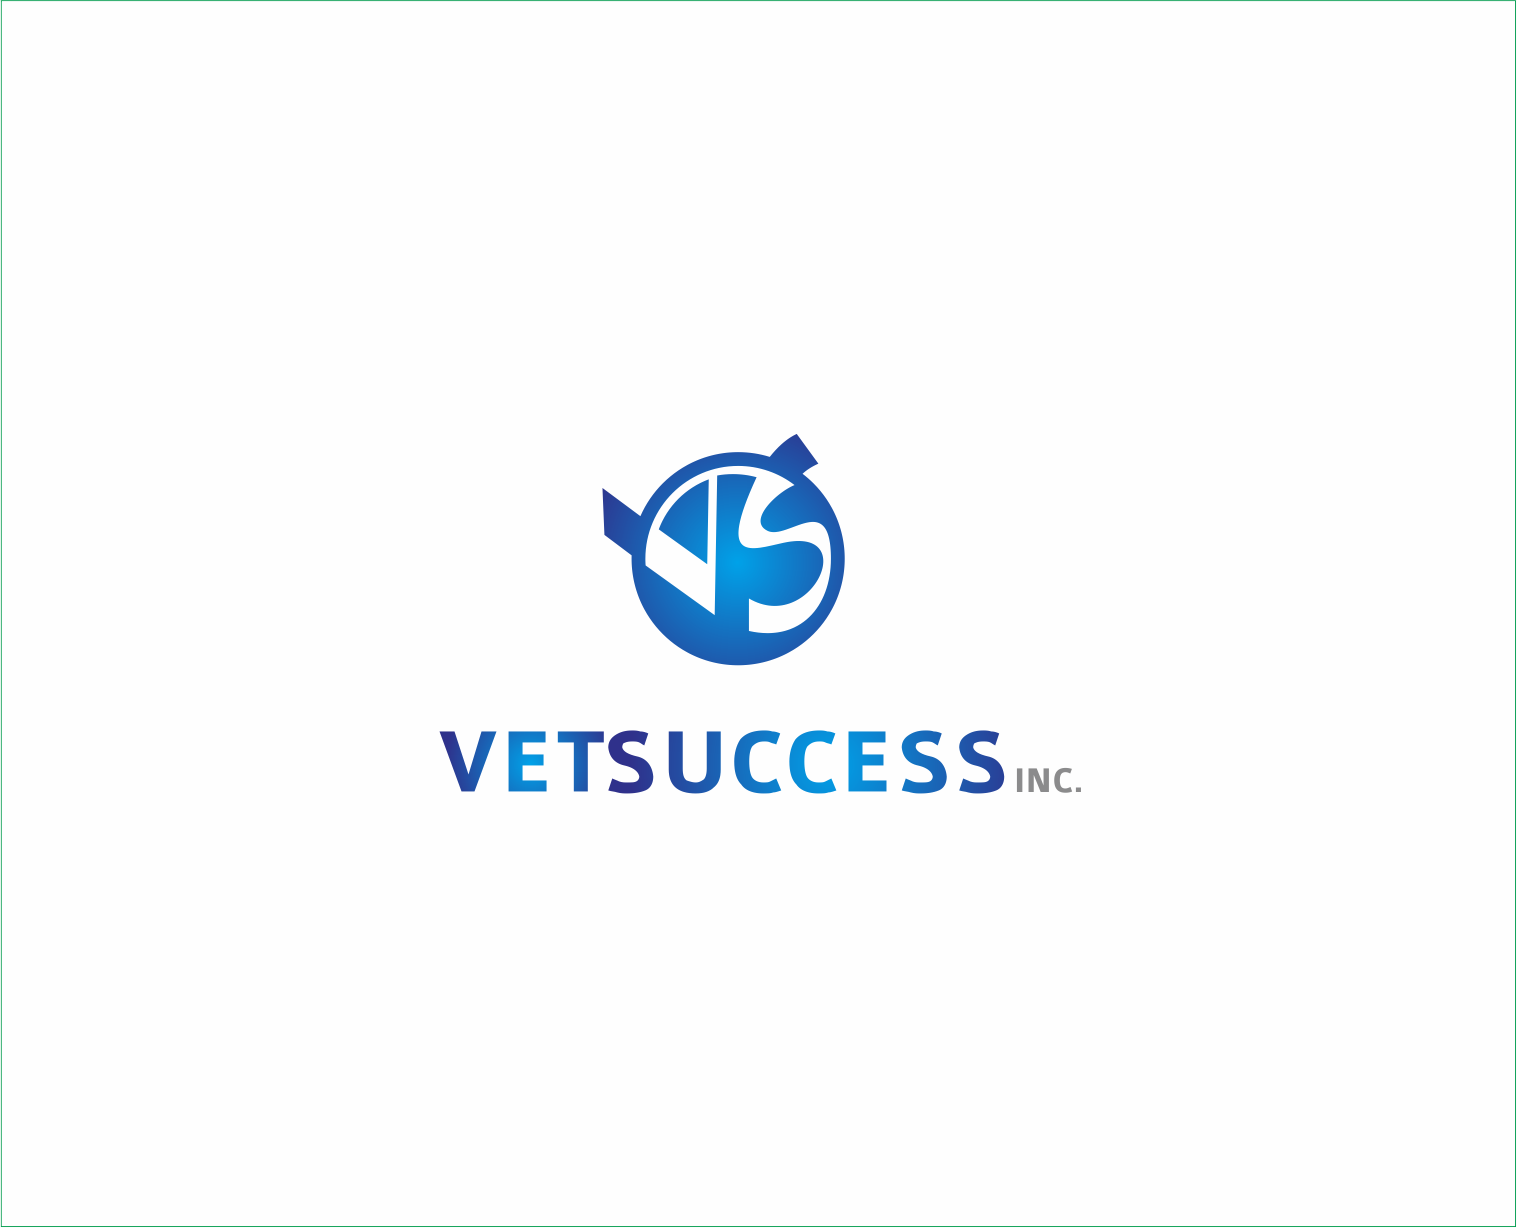 Logo Design by Armada Jamaluddin - Entry No. 135 in the Logo Design Contest Imaginative Logo Design for Vet Success Inc..